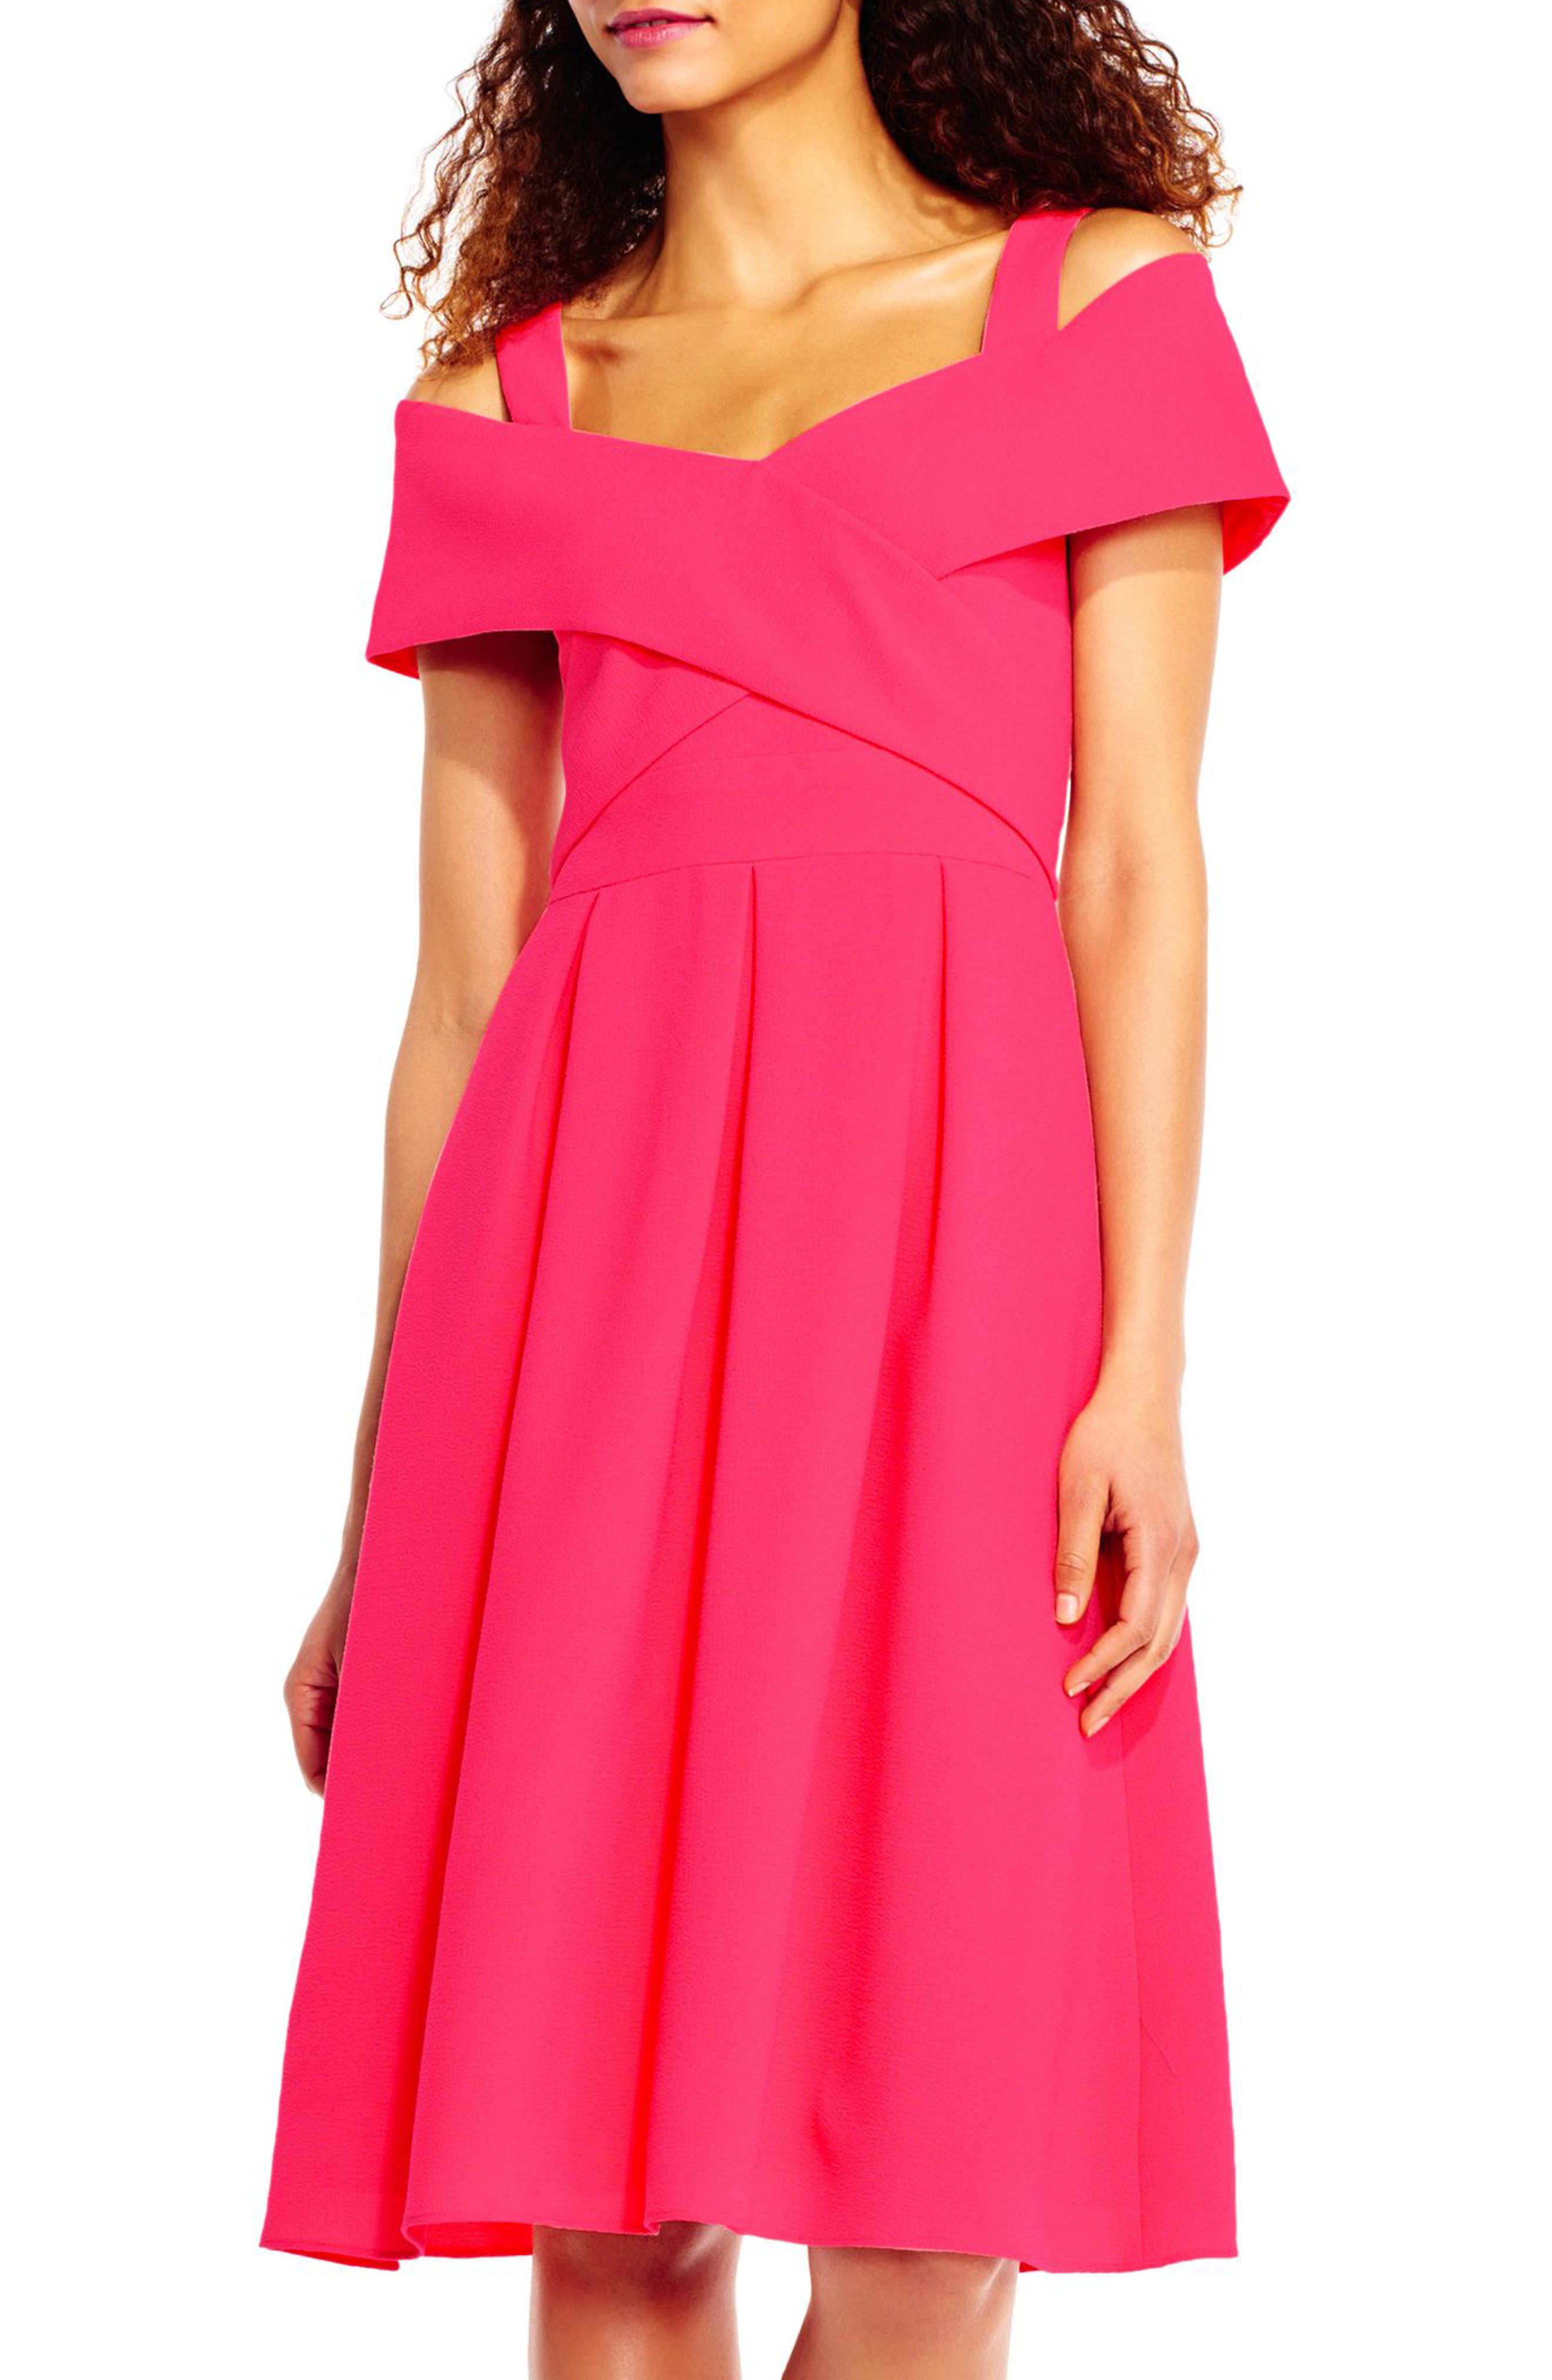 Adrianna Papell Off the Shoulder Dress